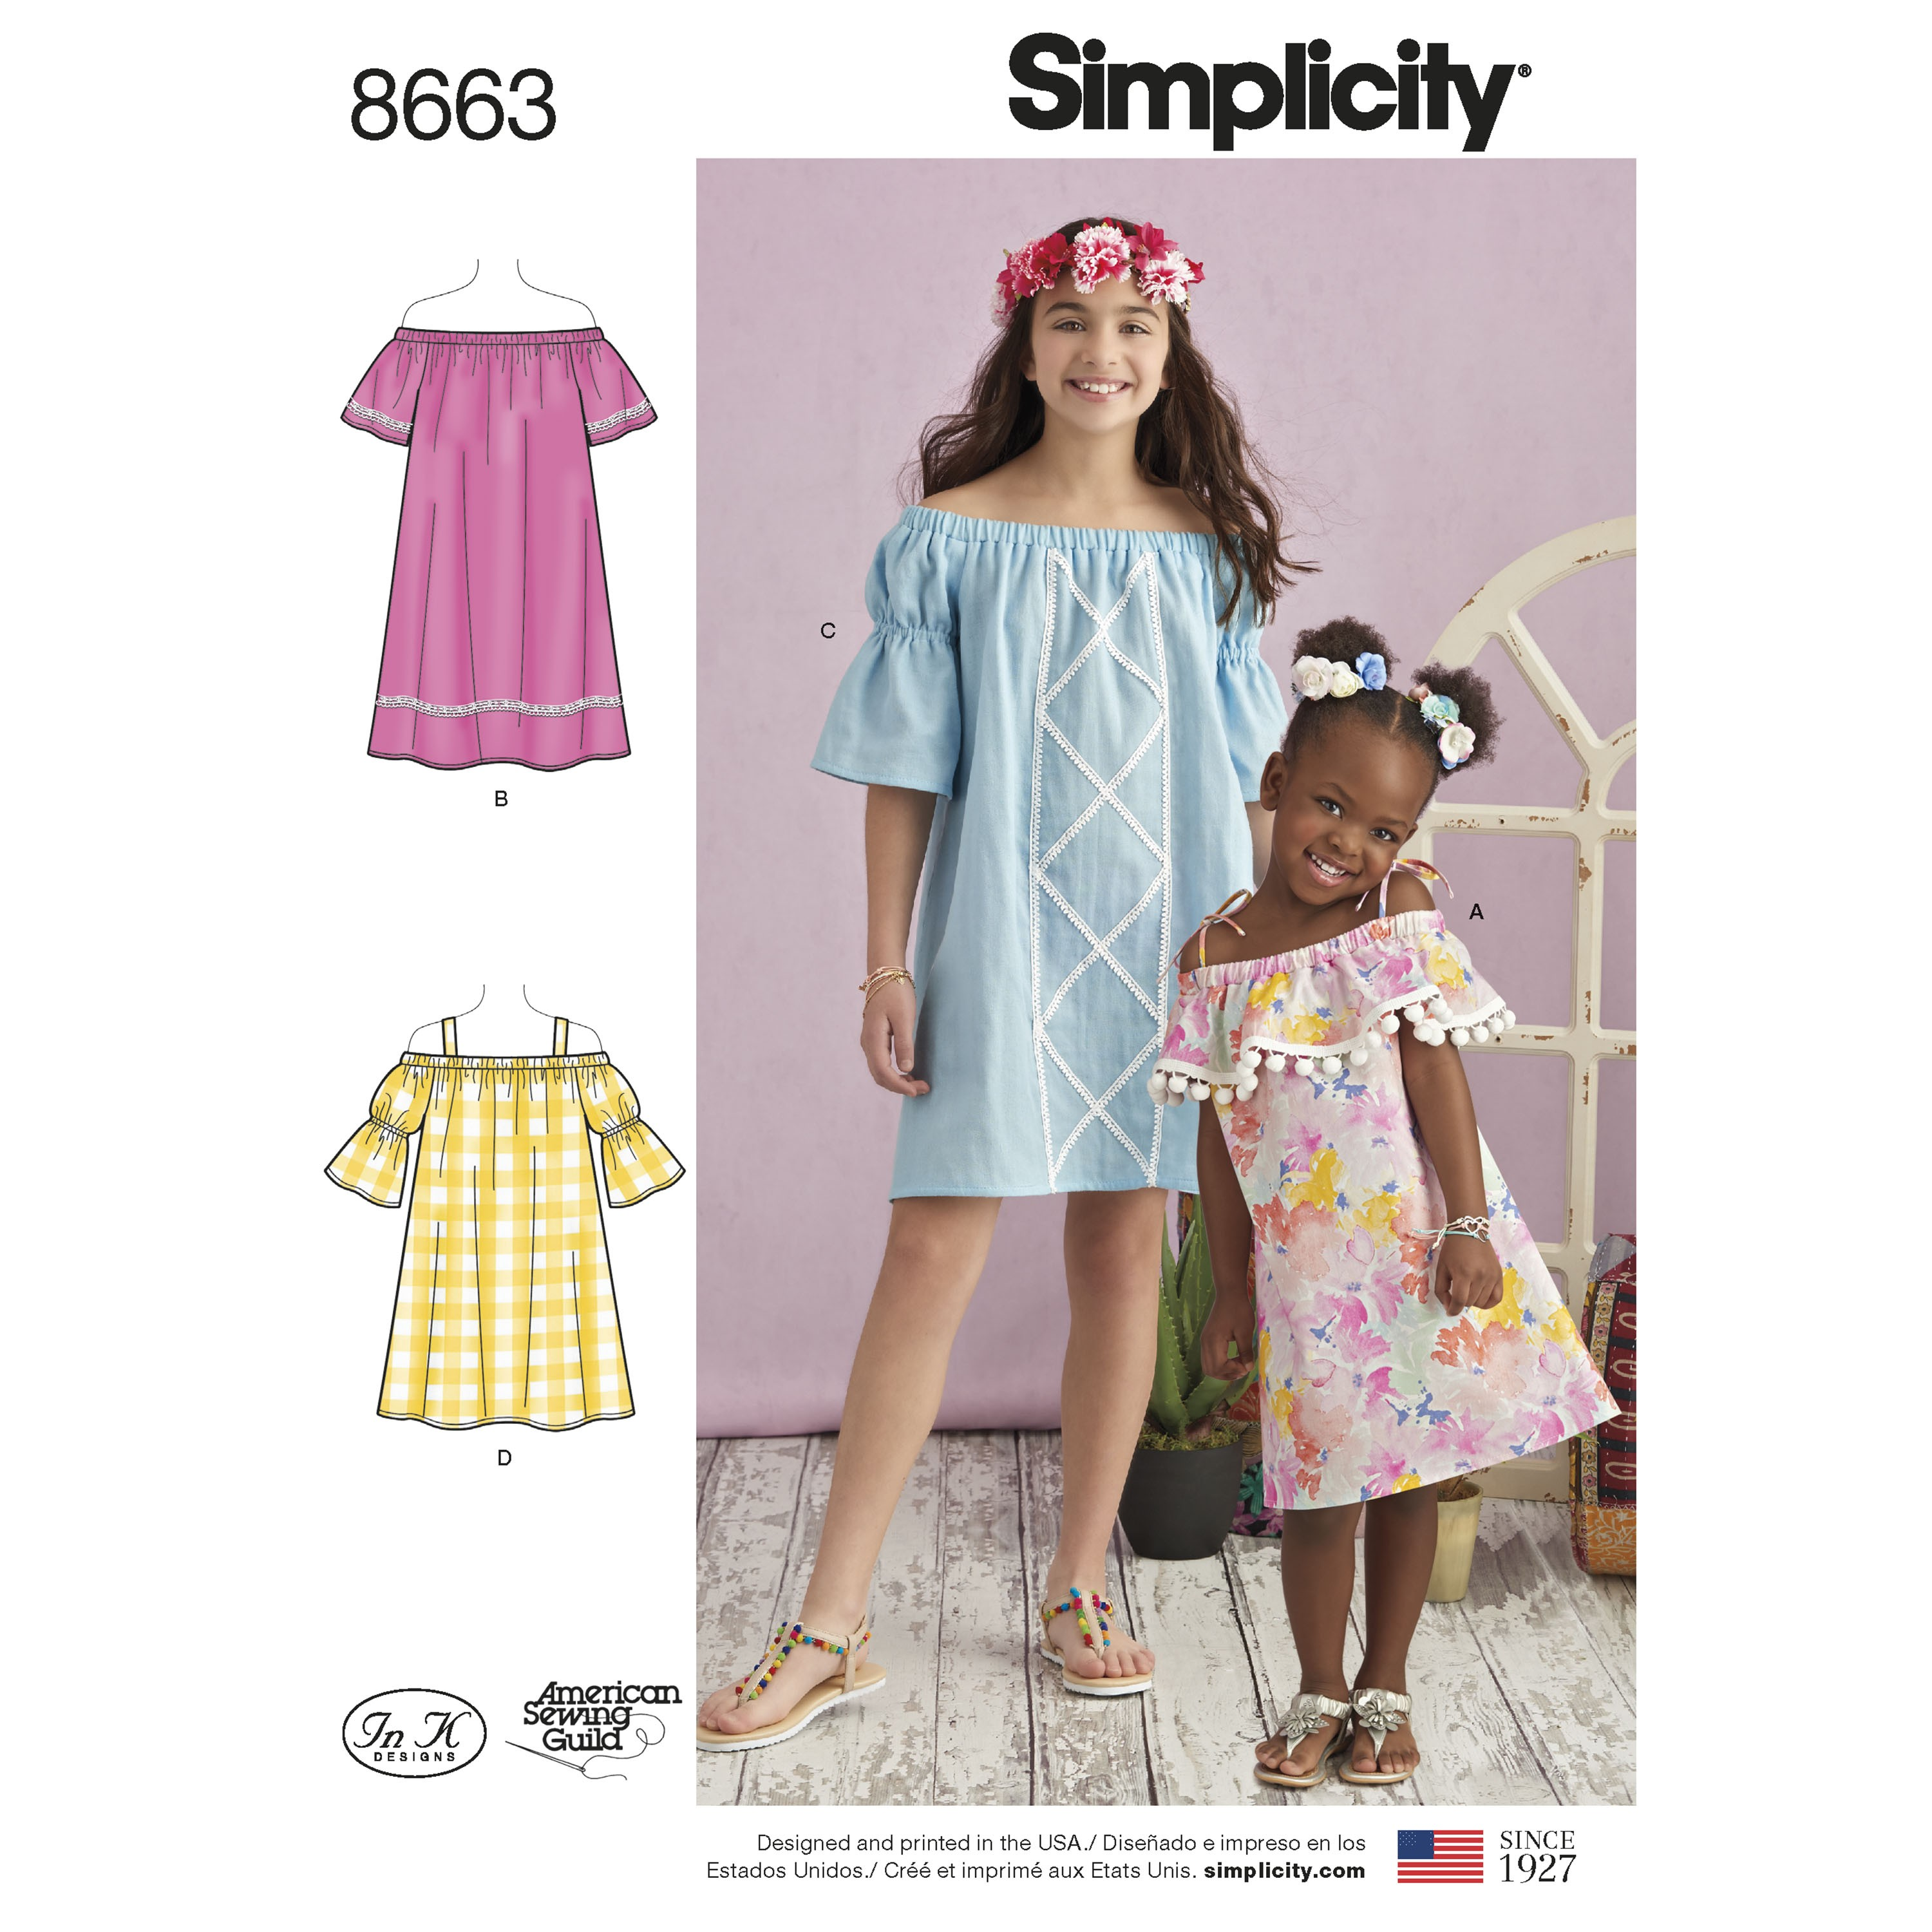 Simplicity Sewing Pattern 8663 Child's and Girls' Dress